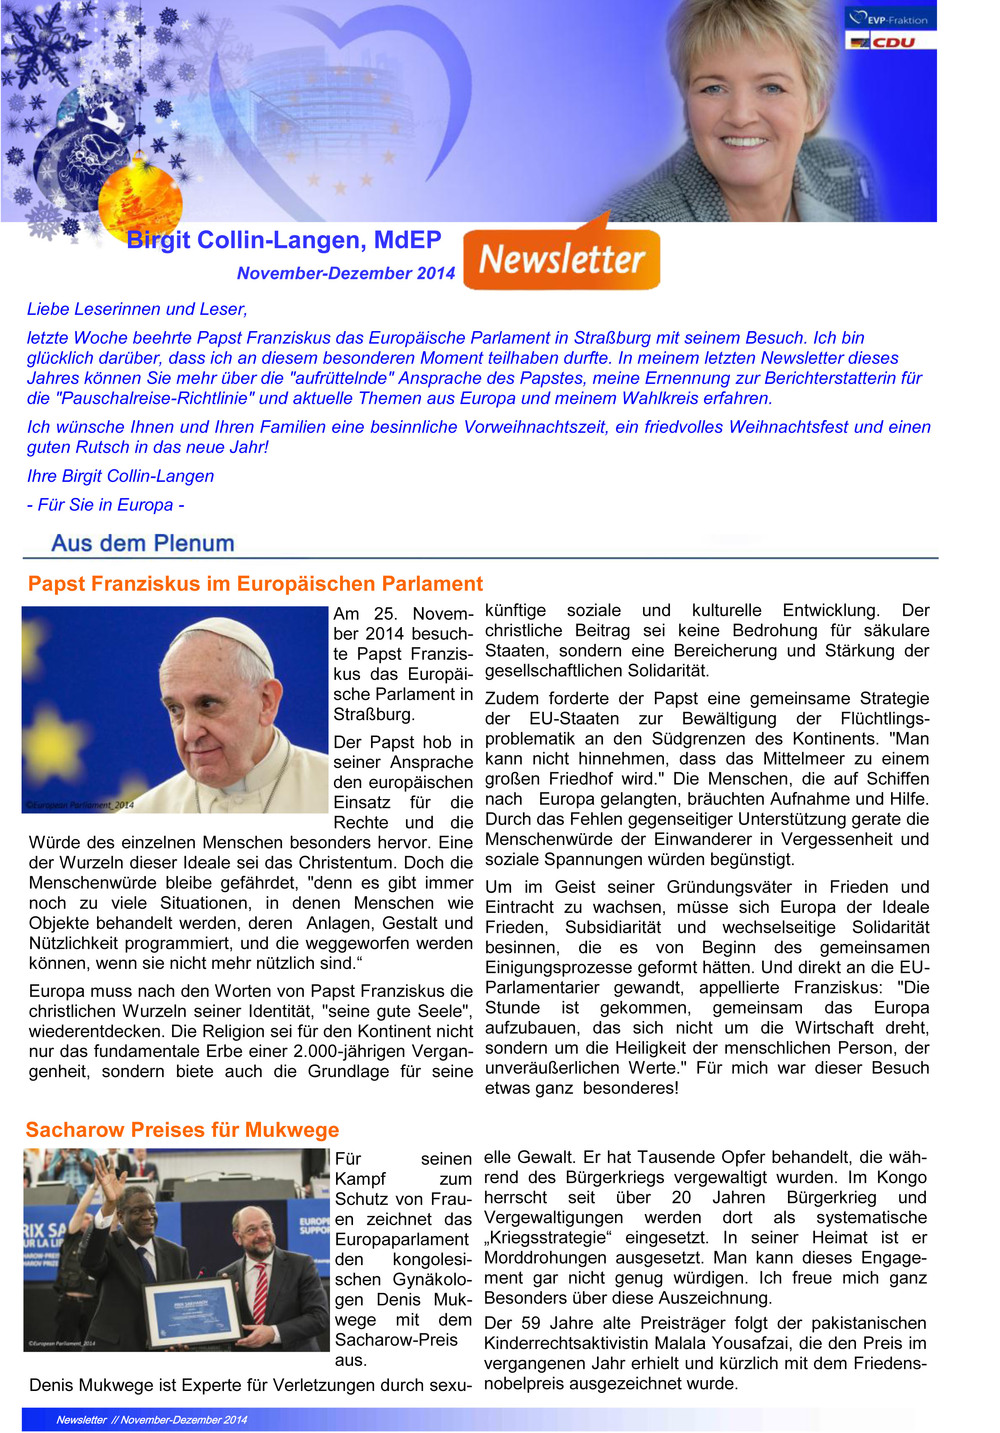 newsletter-nov-dez-2014.jpg